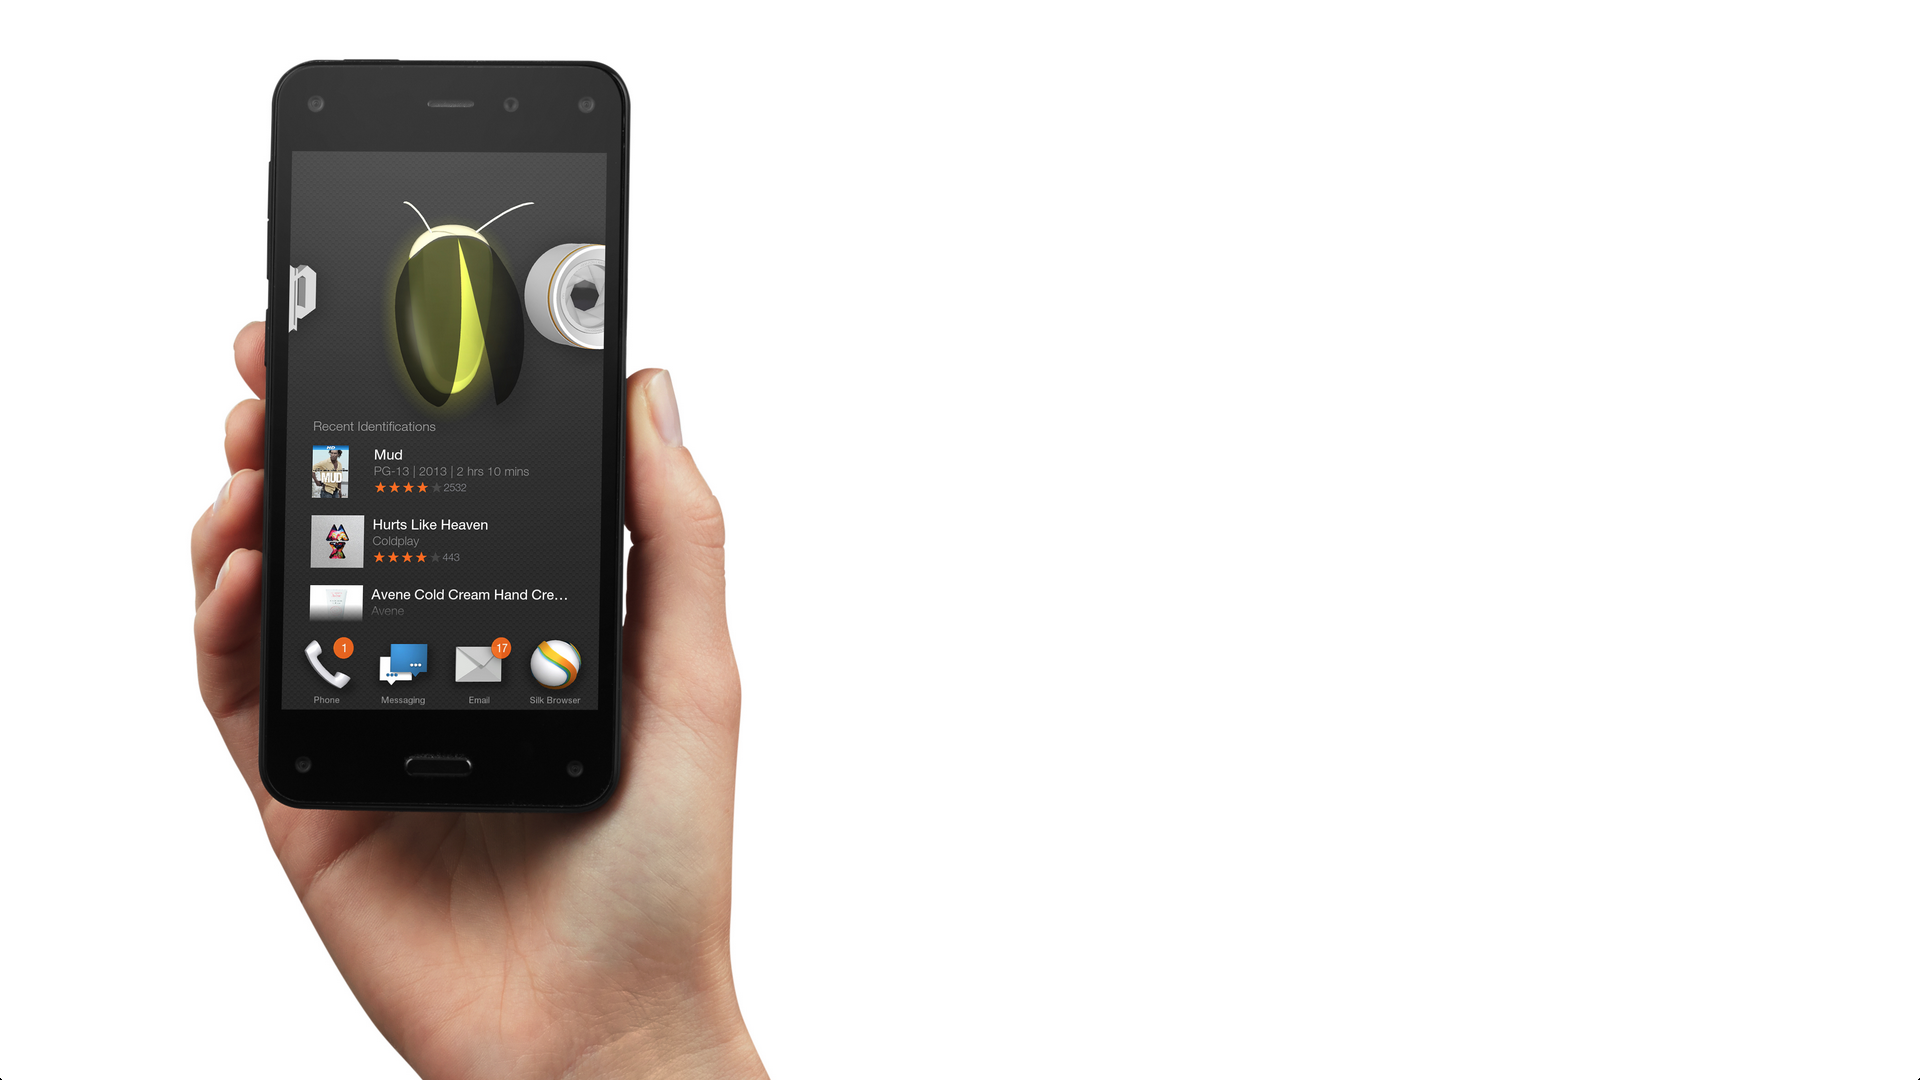 Amazon's new Fire phone, demonstrating the Firefly feature.